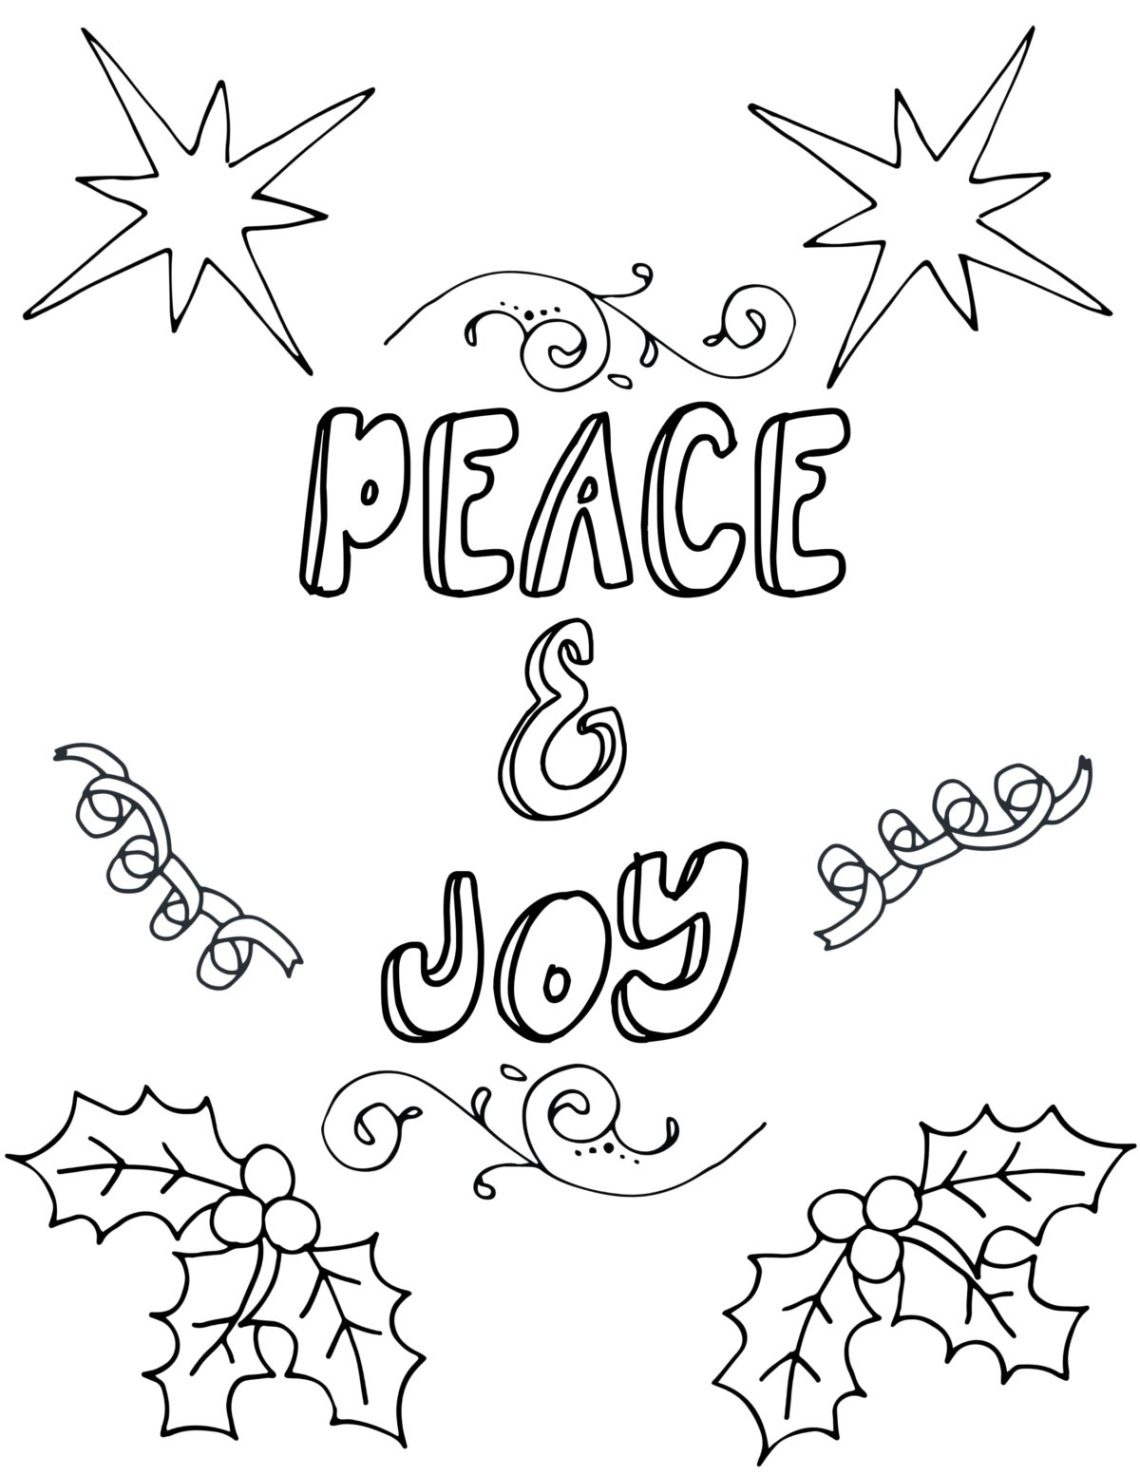 Free Printable Christmas Coloring Pages For Adults | free printable christmas coloring pages